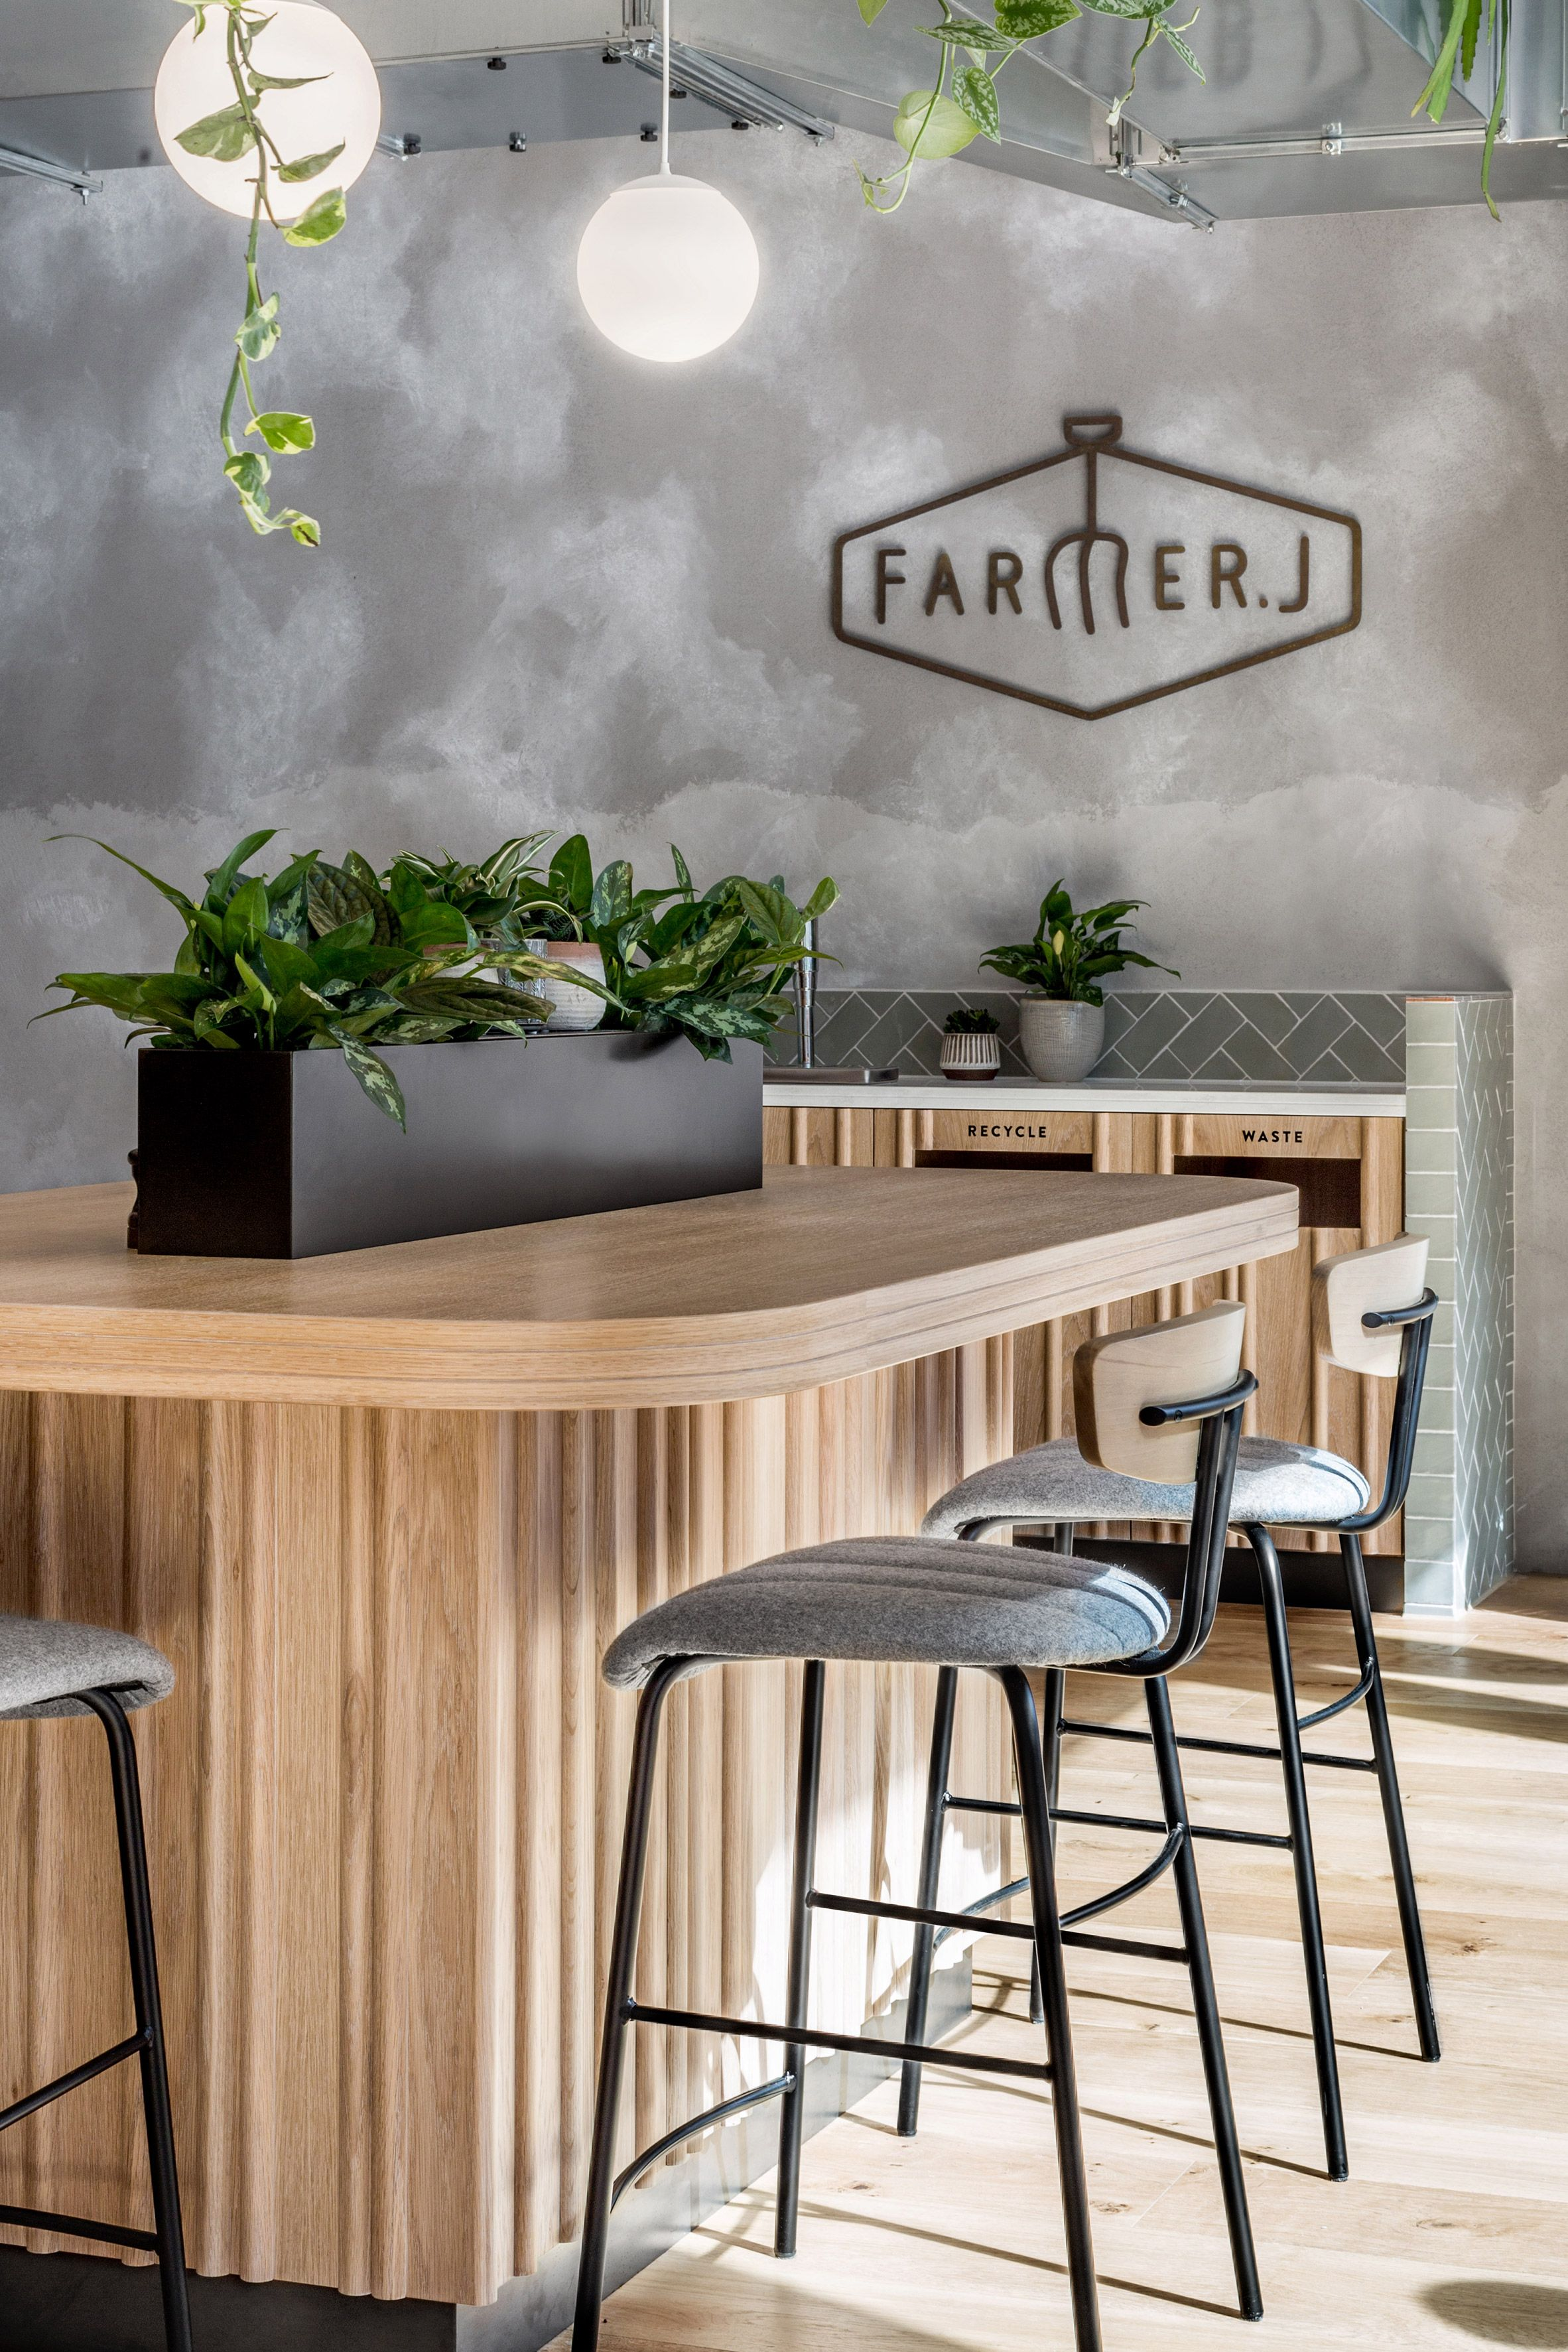 Farmer J restaurant in London boasts grey surfaces and green accents ...